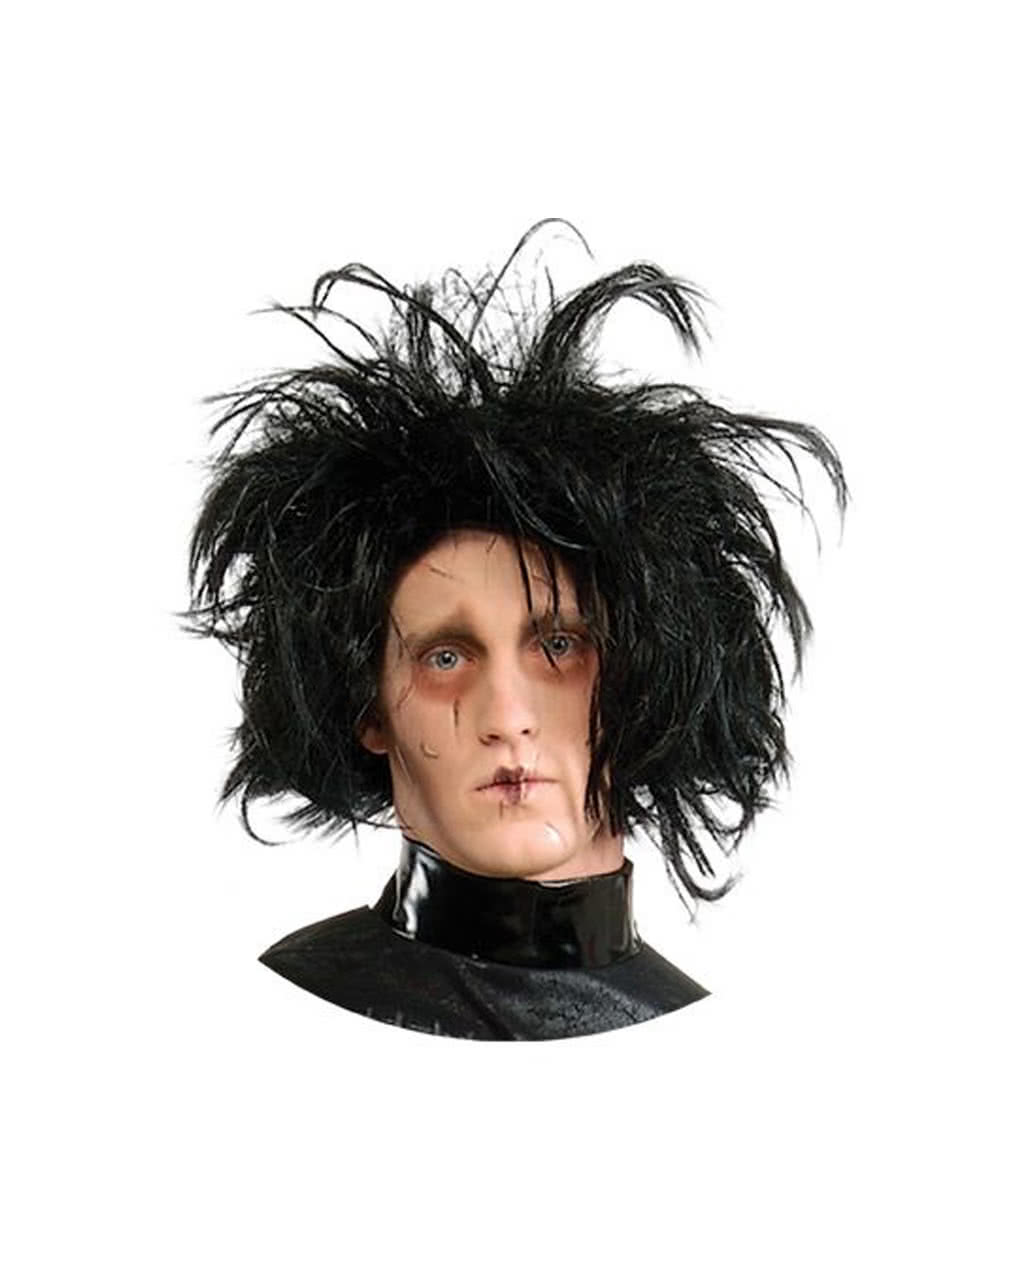 edward scissorhands discourses of meaning There's no doubt that you've experienced bad things in life but that doesn't mean you're a bad person moral lessons we learned from edward scissorhands the main themes behind the film deal with self-discovery and isolation.